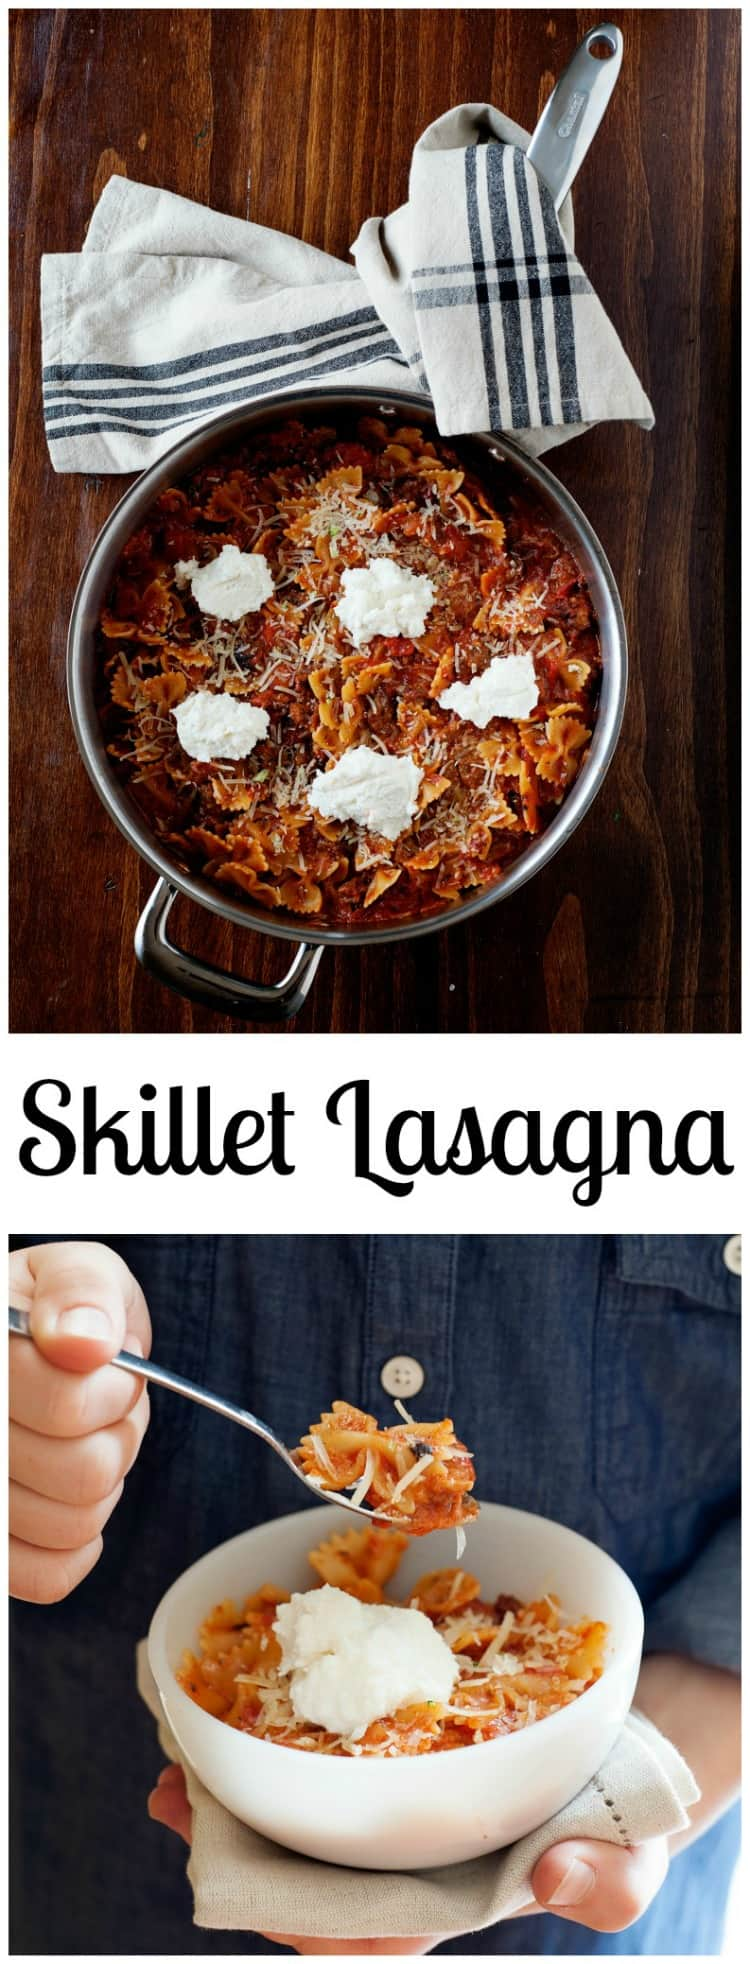 This kid approved Quick and Easy Skillet Lasagna recipe, has the meaty, tomato sauce and cheesy goodness of traditional lasagna, but takes a lot less time to make. A win for everyone when it comes to putting dinner on the table.